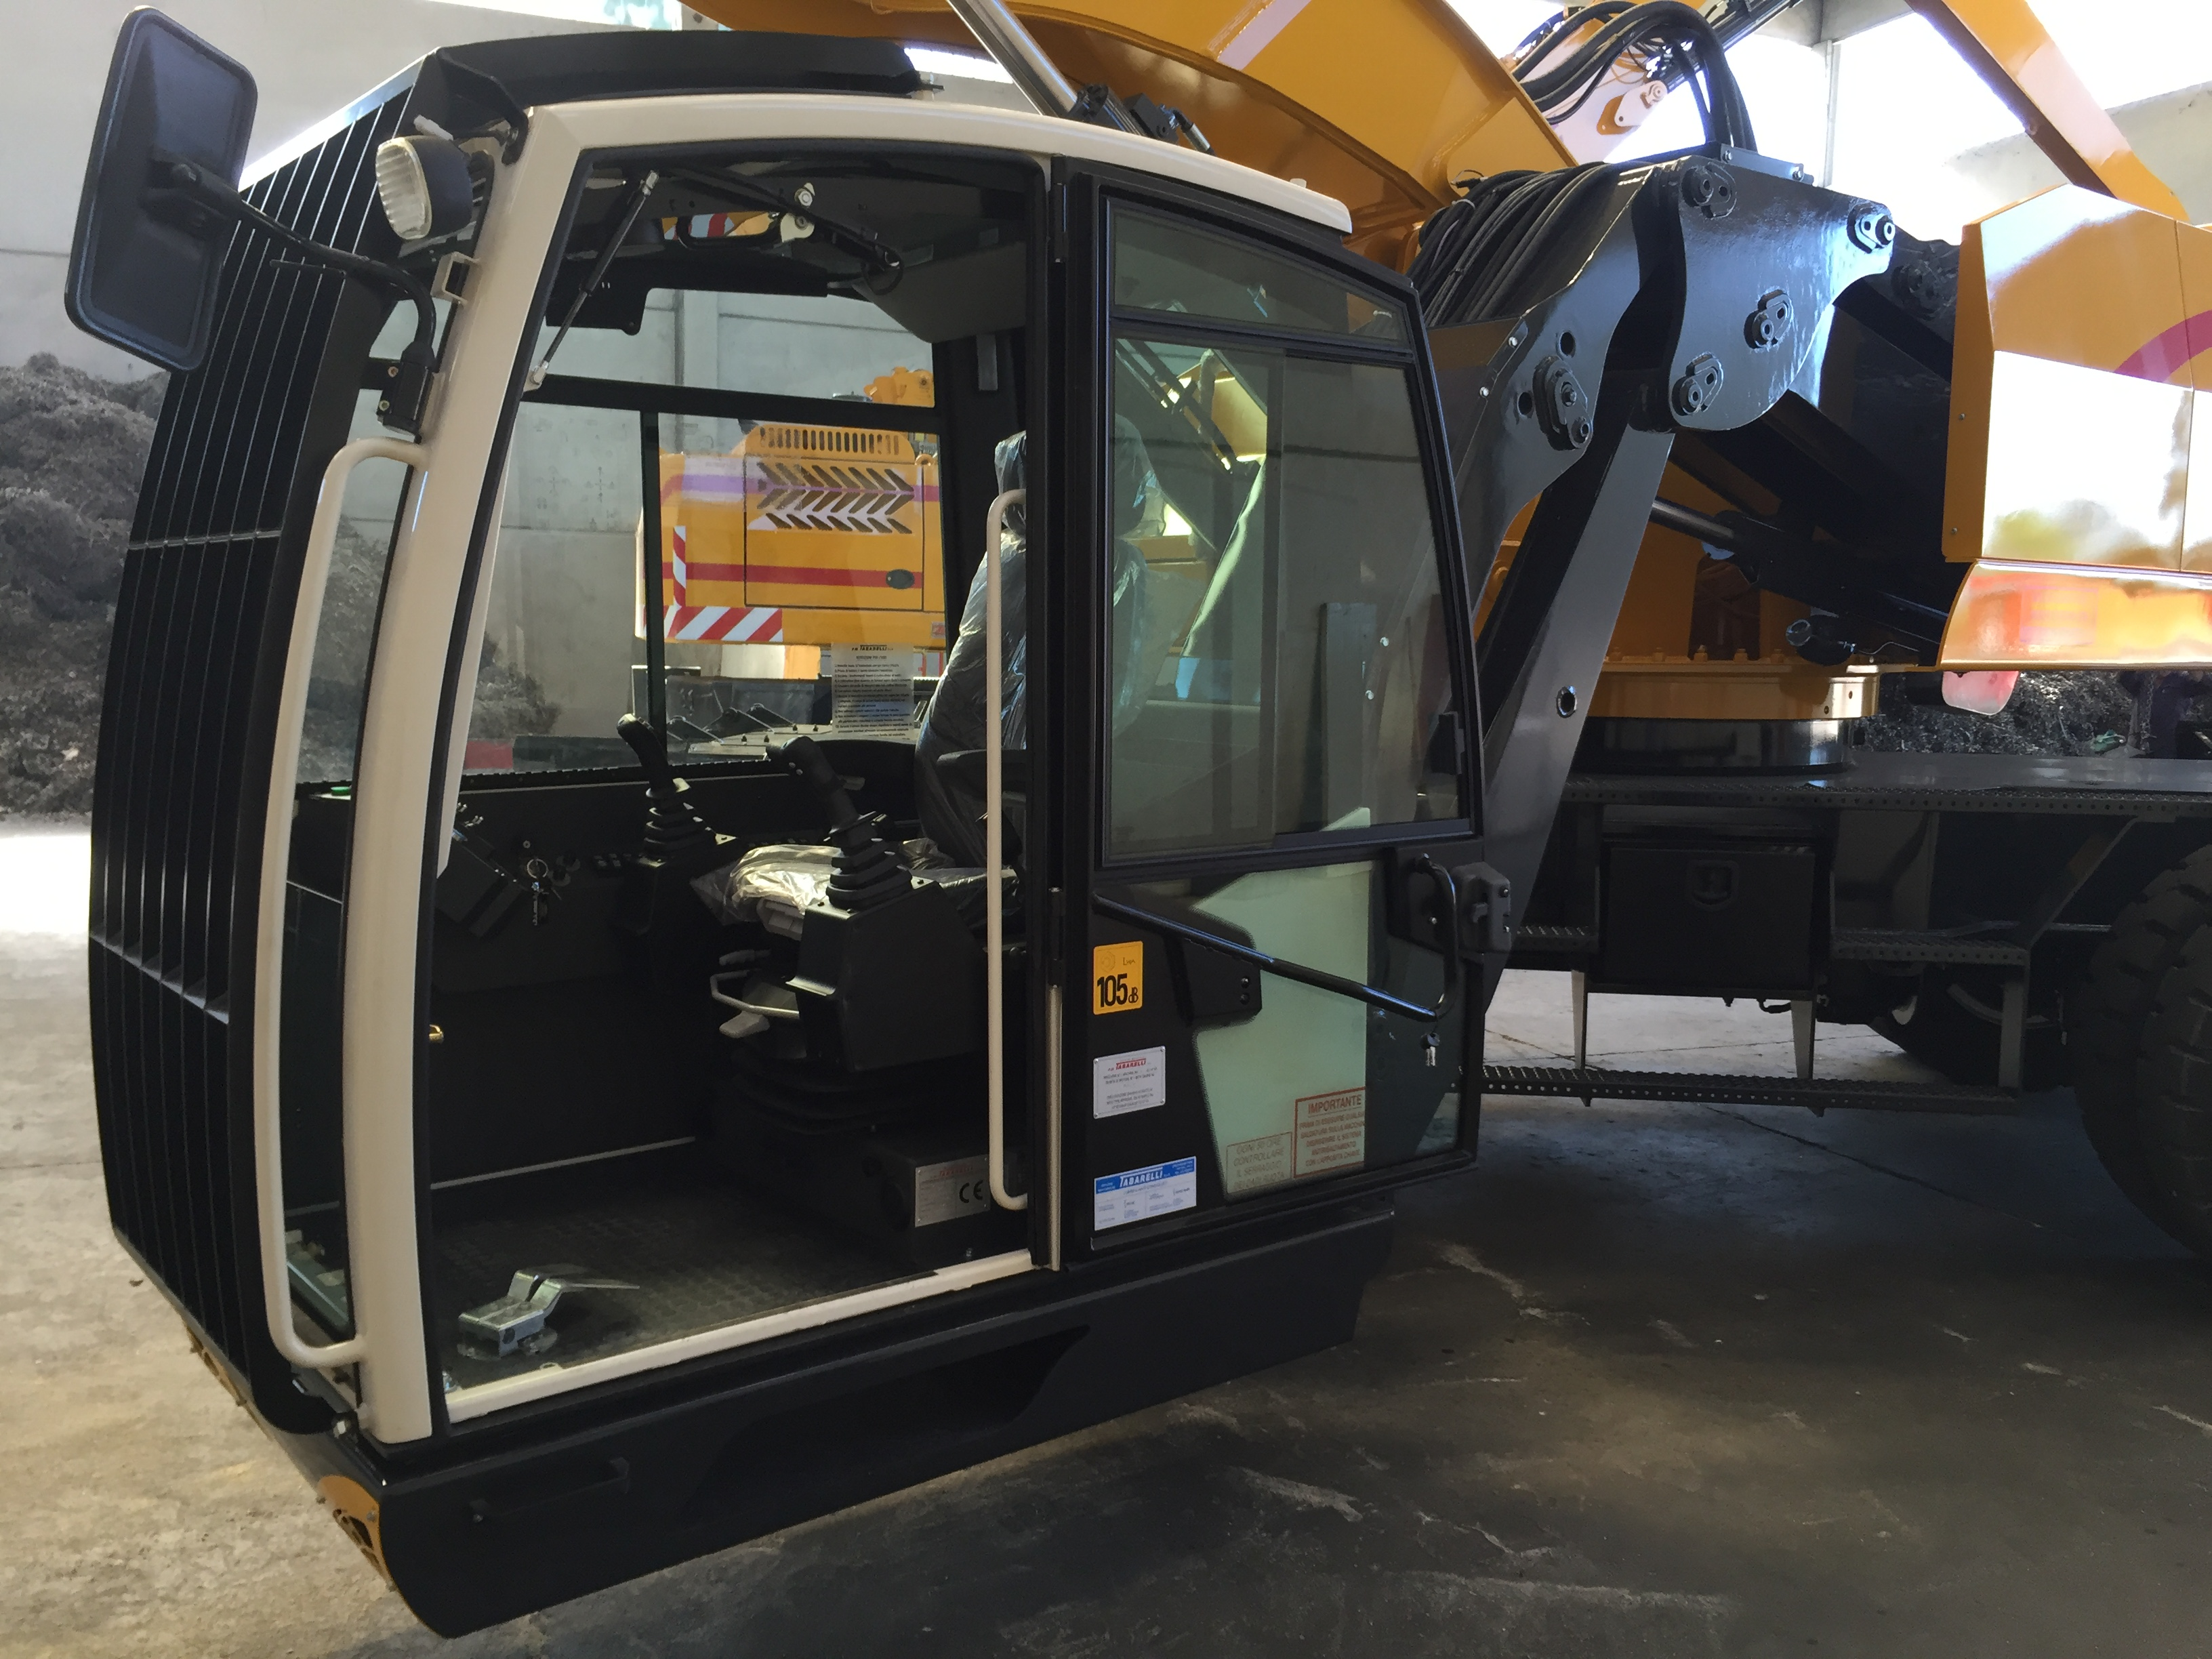 Tabarelli material handling T916 with Fly cab system